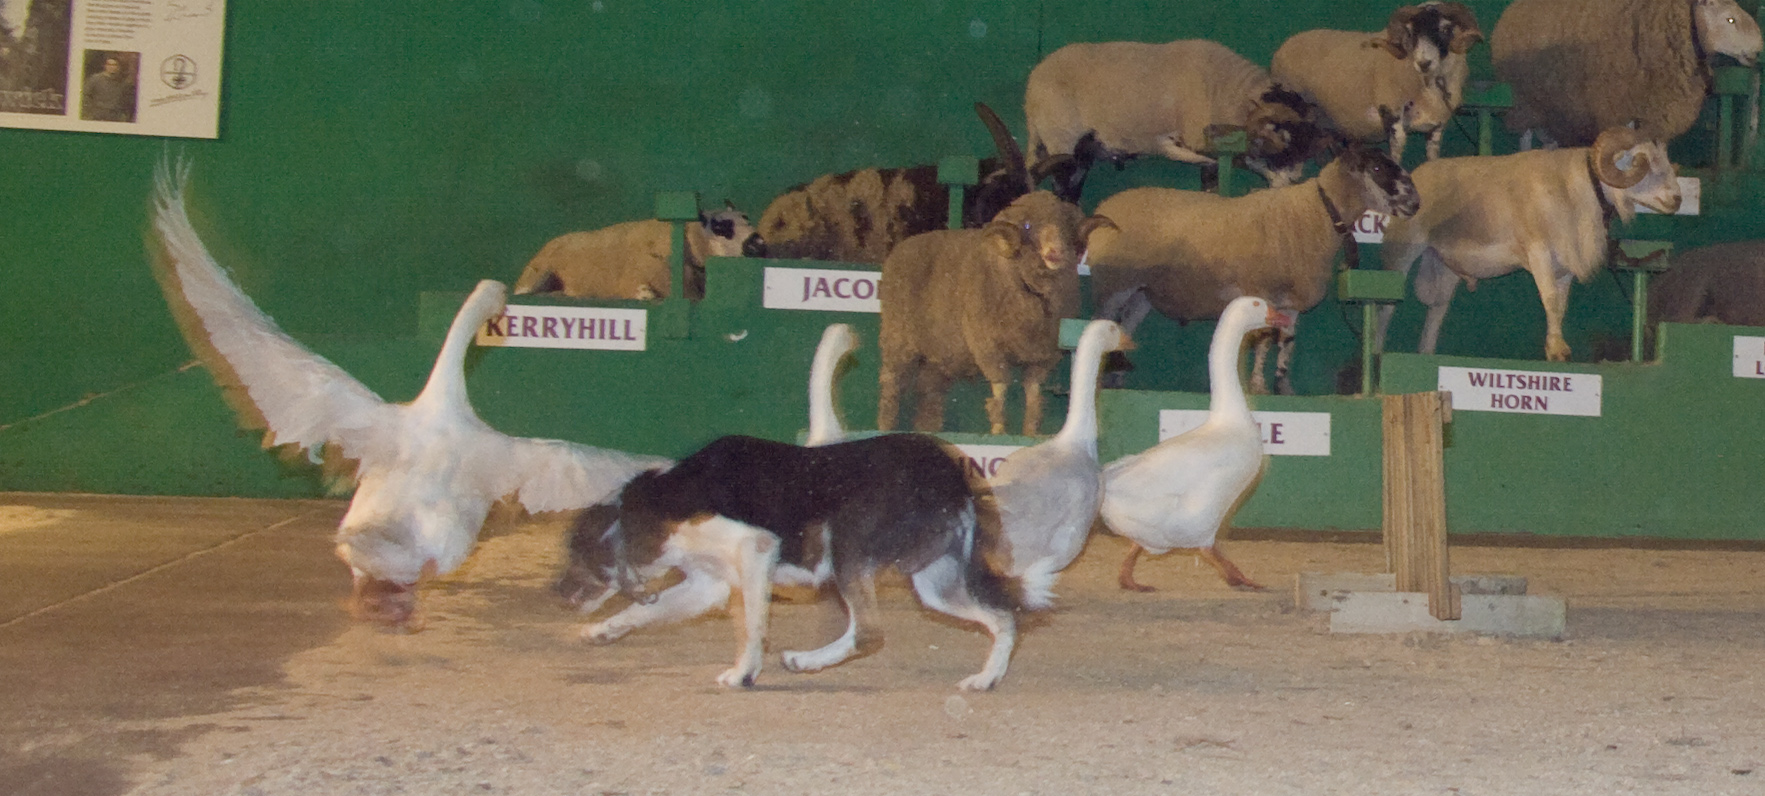 Sheep dog herding demonstration with geese